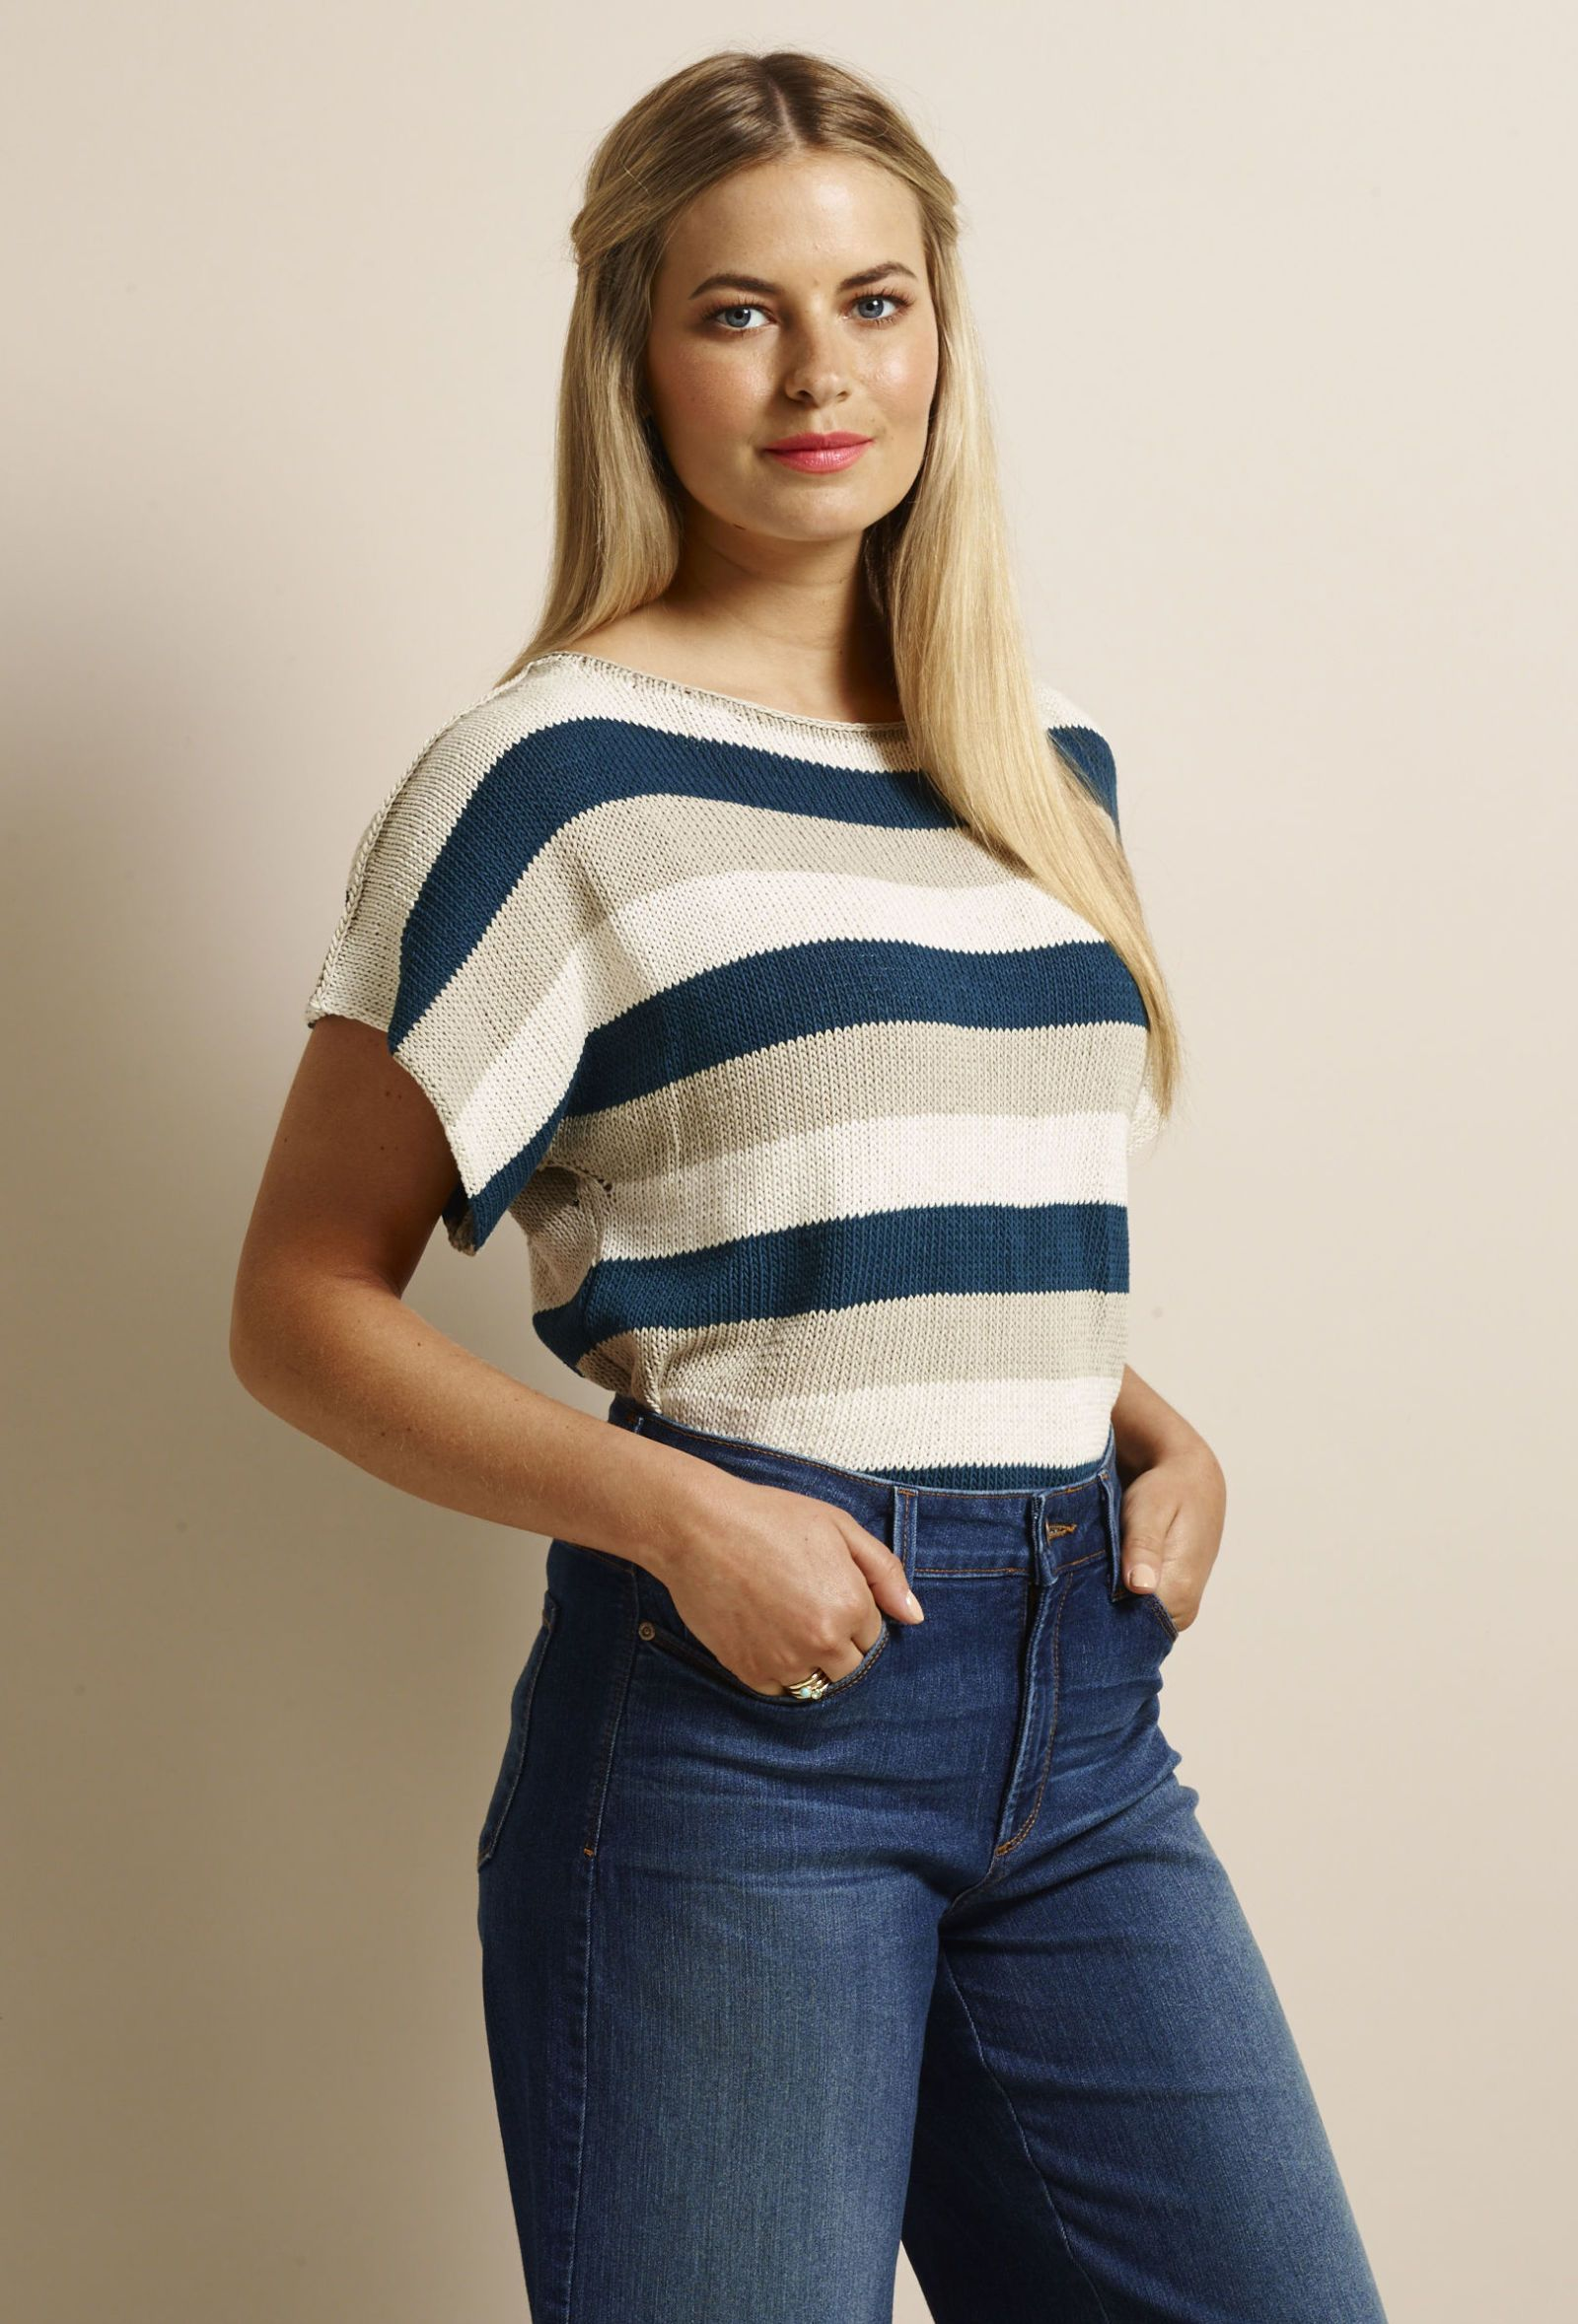 Get knitting and make this cute striped top | Knitting patterns ...